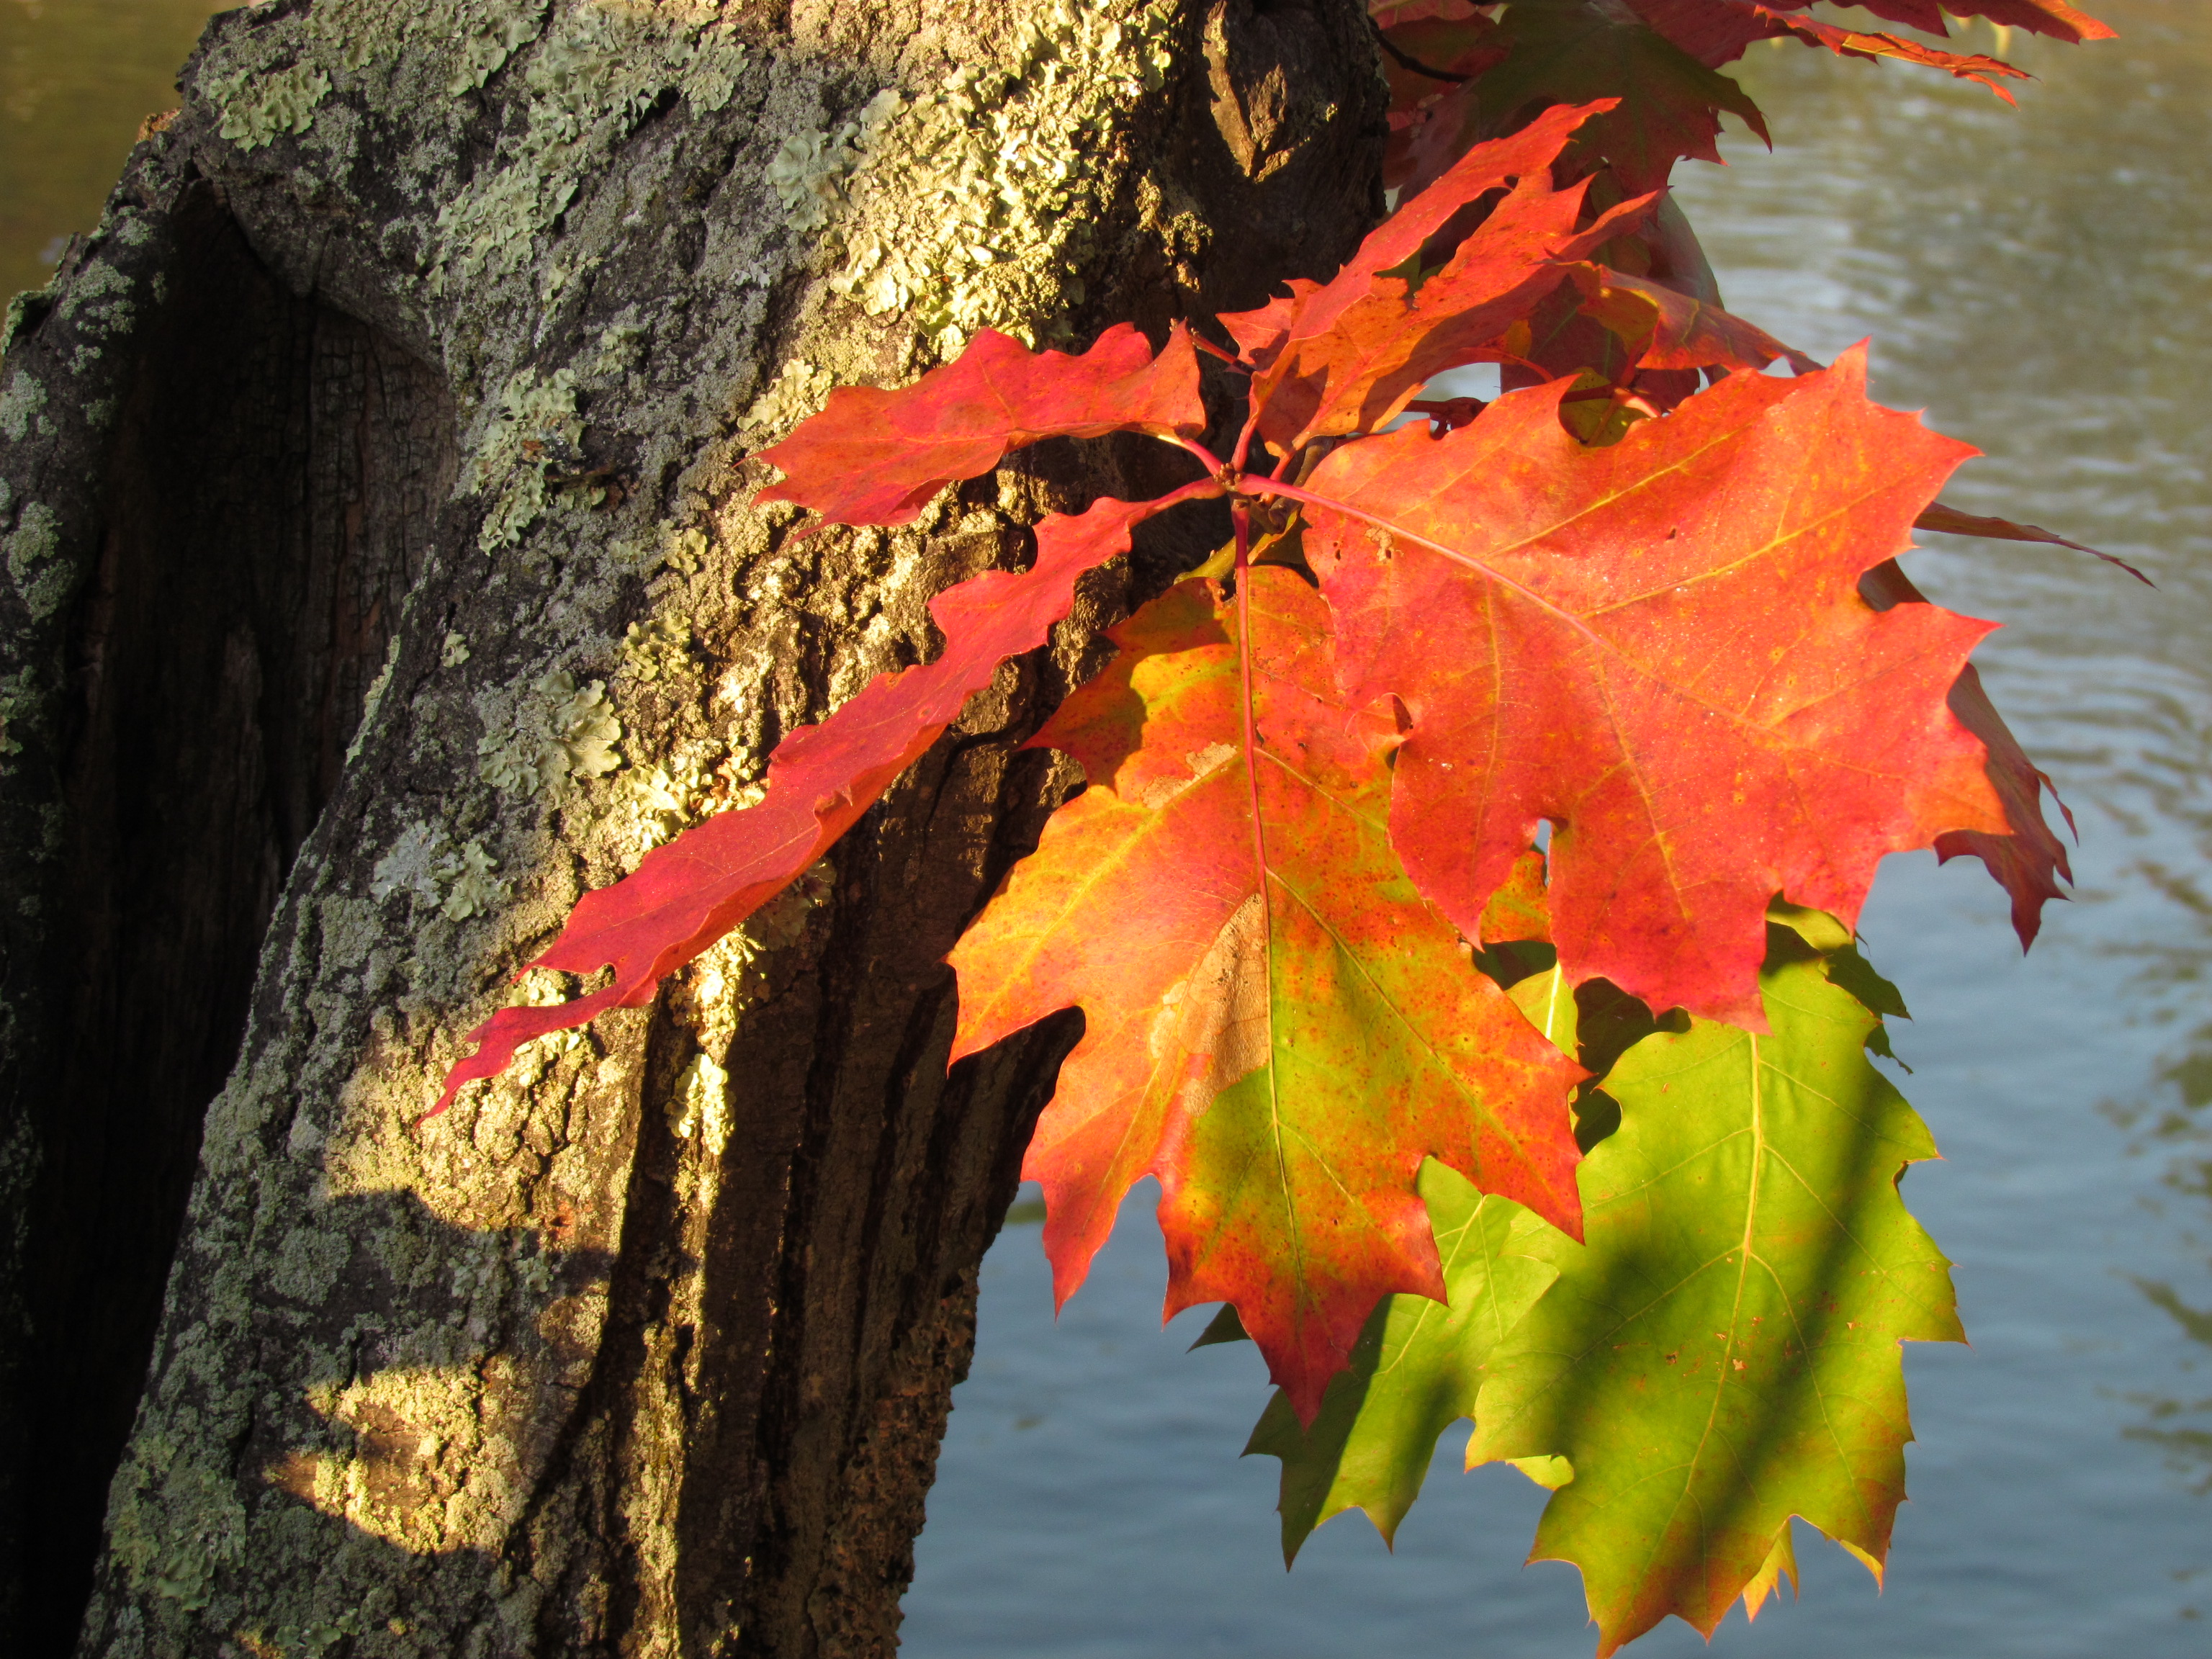 A close-up photo of maple leaves in brilliant fall colors (red, orange, yellowish-green) near a tree trunk.